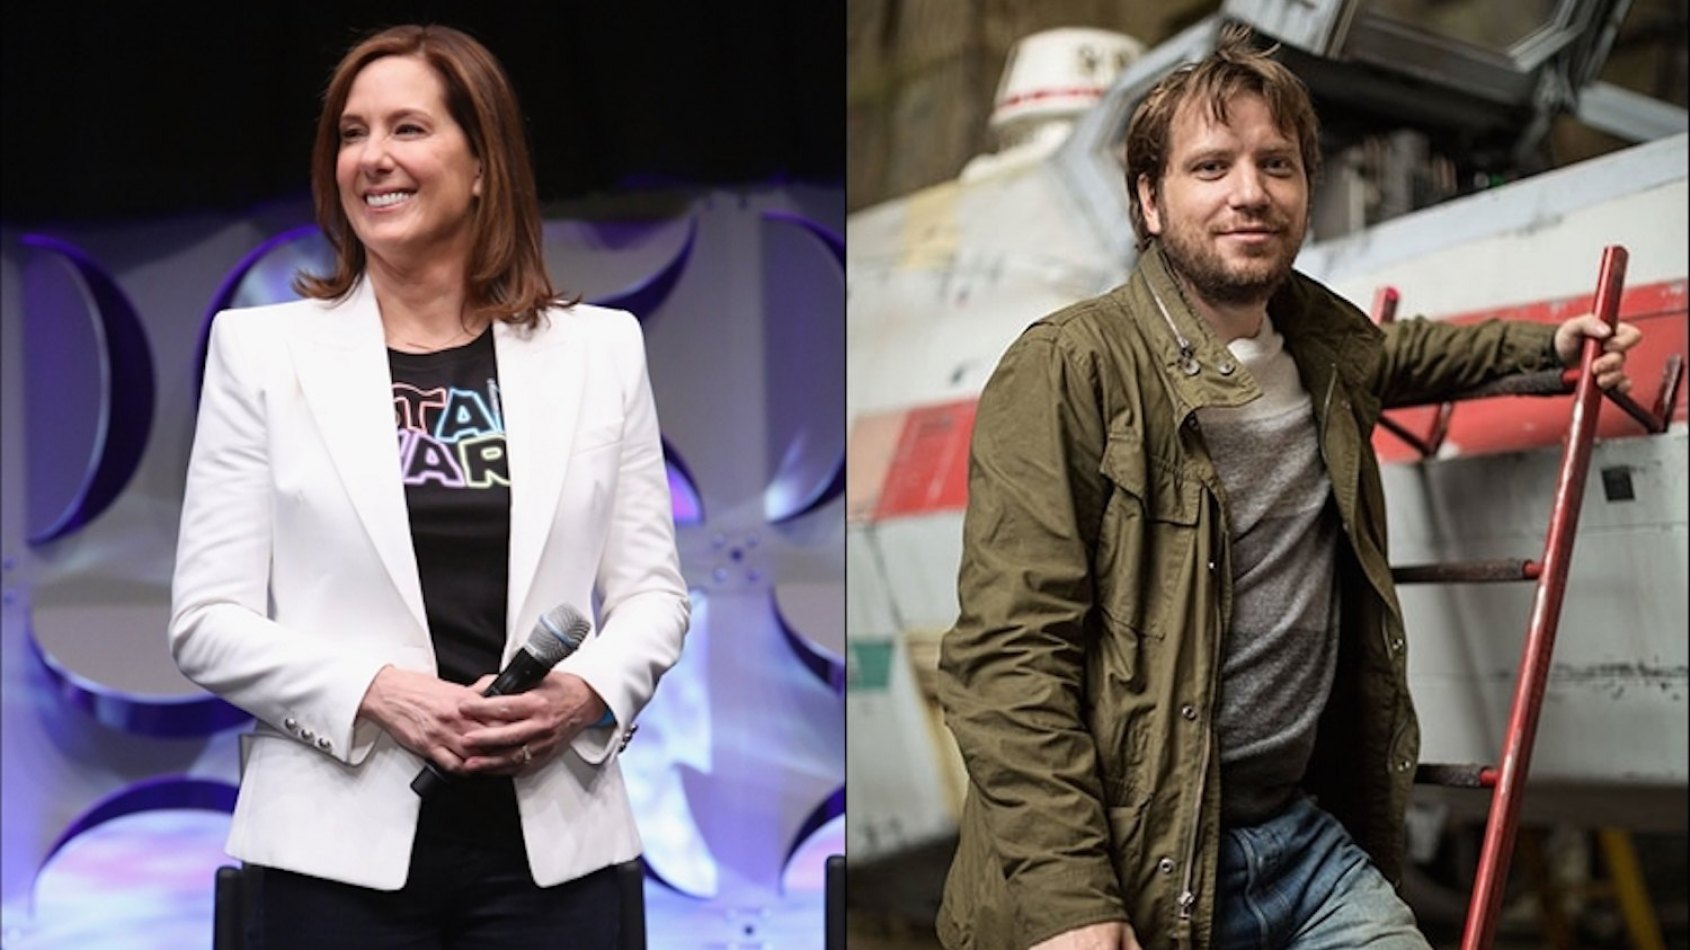 Kathleen Kennedy et Gareth Edwards à la Star Wars Celebration Europe!